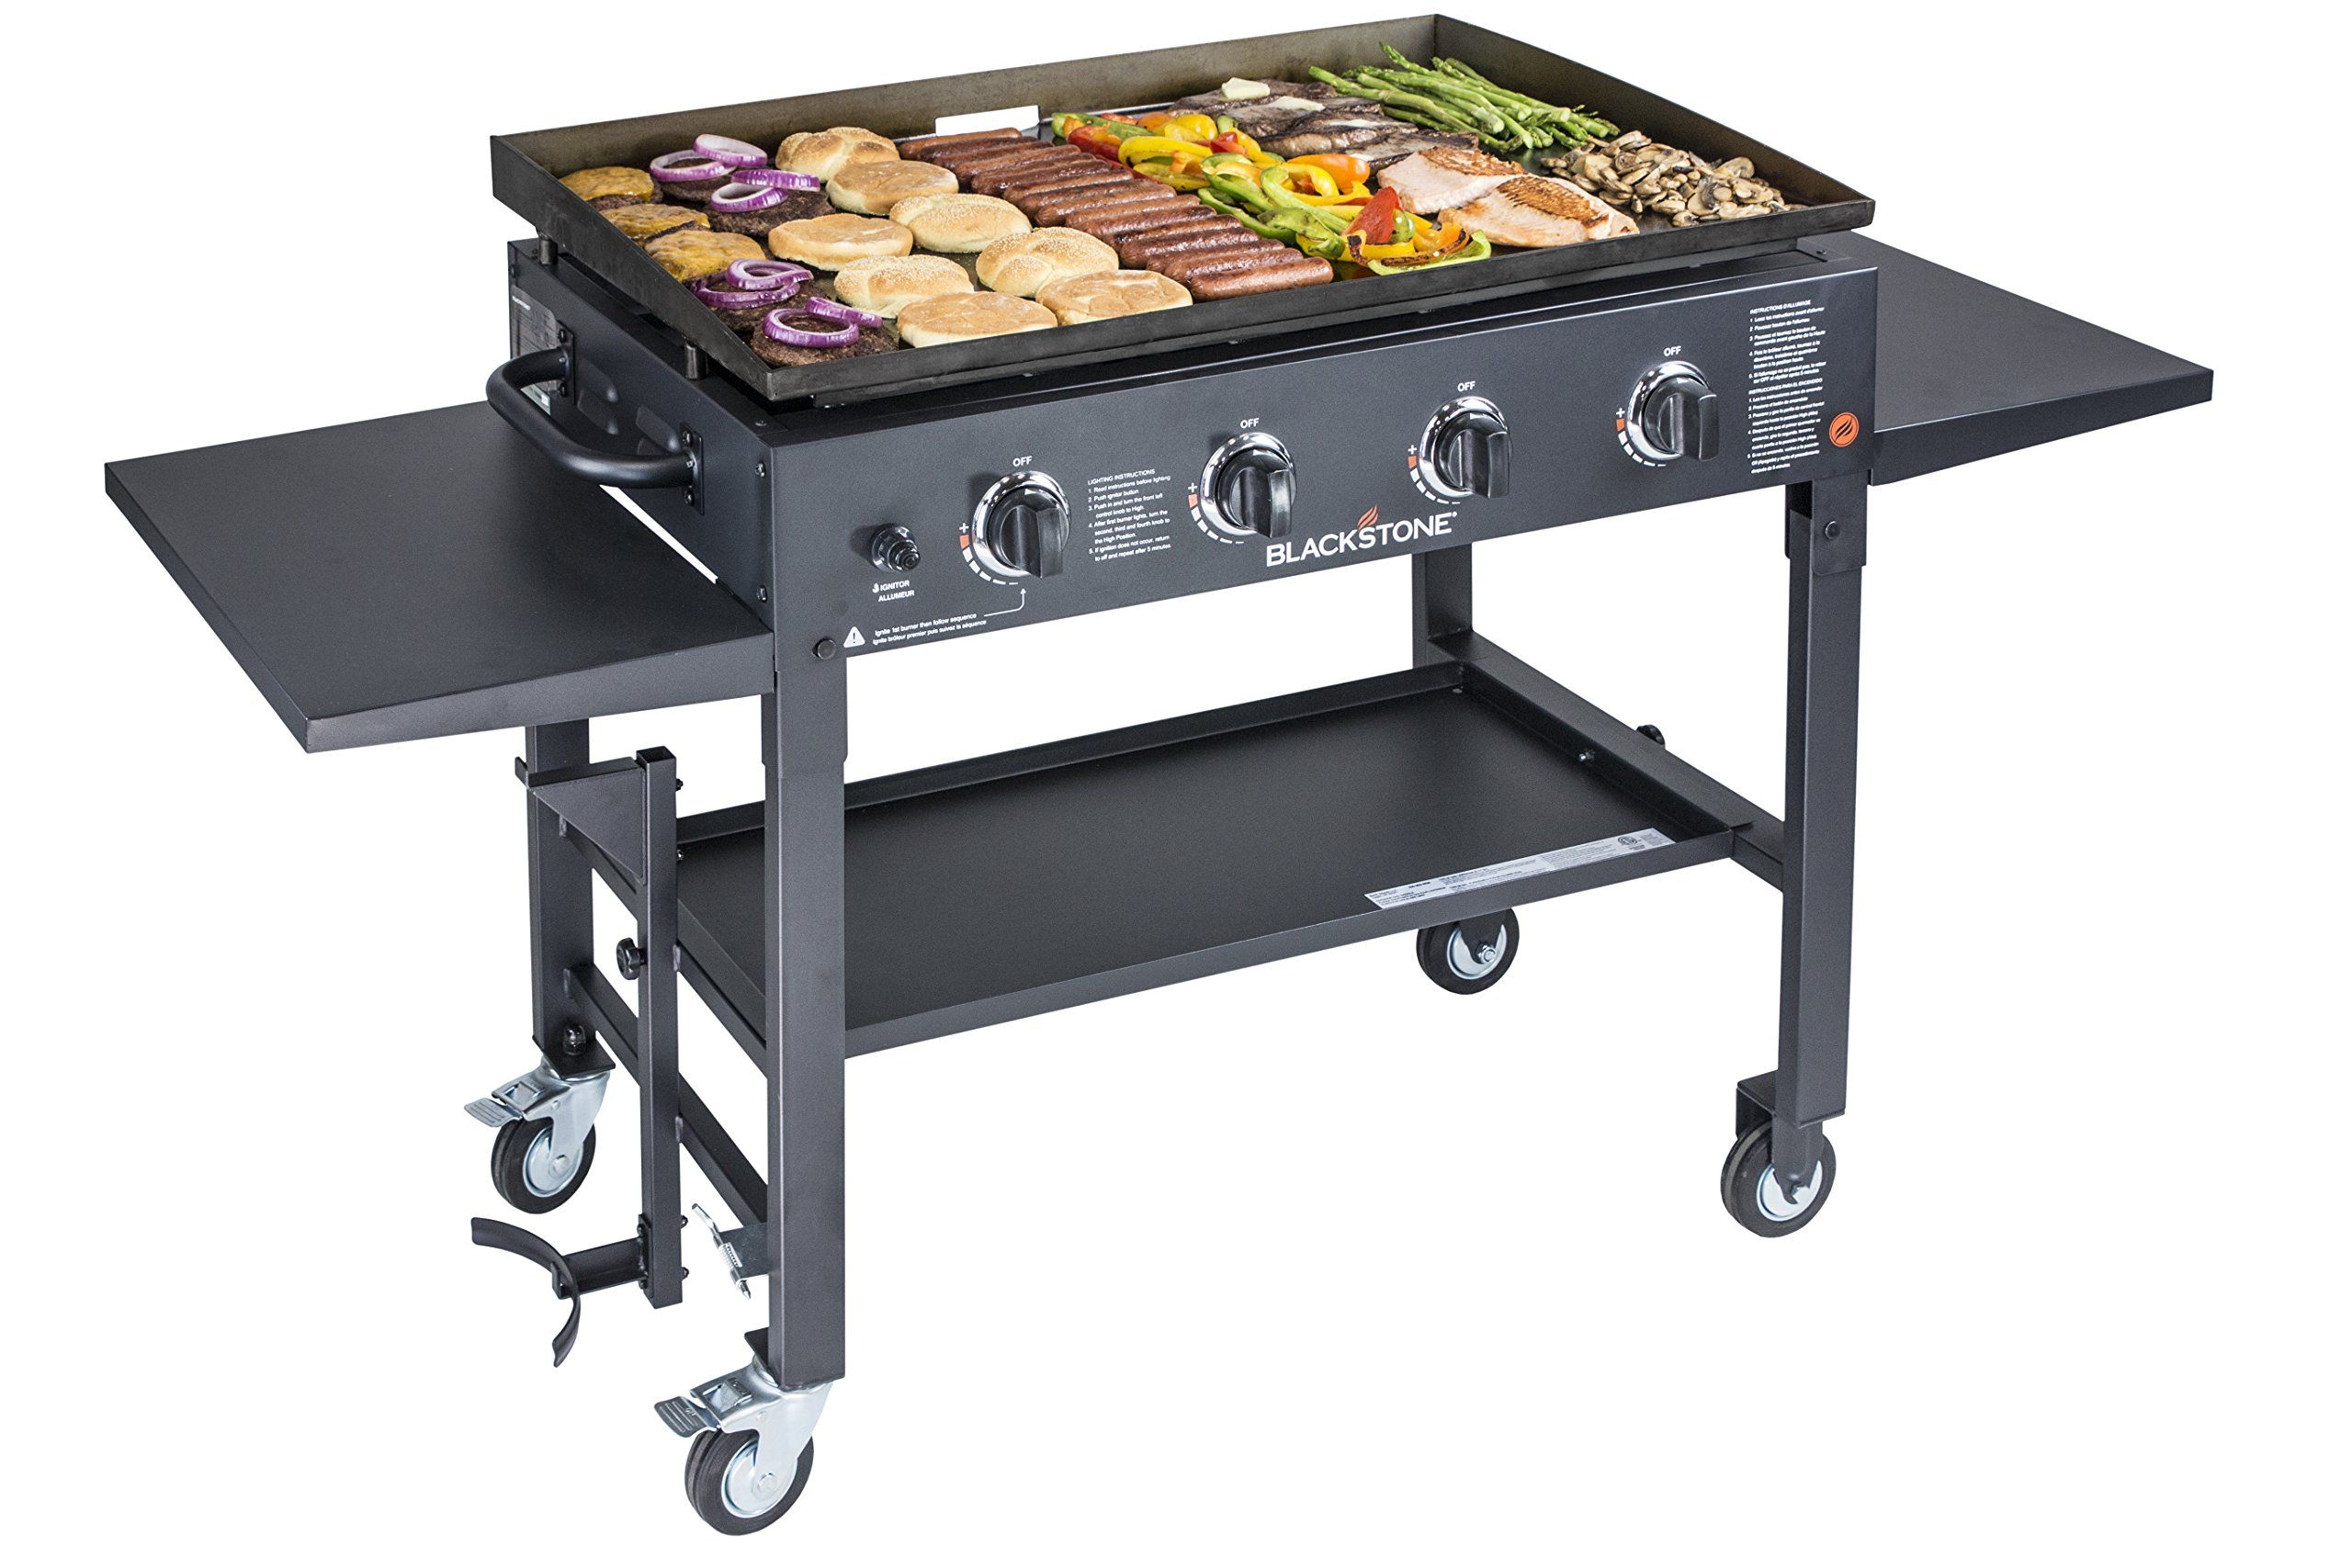 The Best Carts The Best Carts Is A Webshop Magazine Focused On Personal And Commercial Carts In 2020 Griddle Cooking Outdoor Kitchen Design Gas Grill